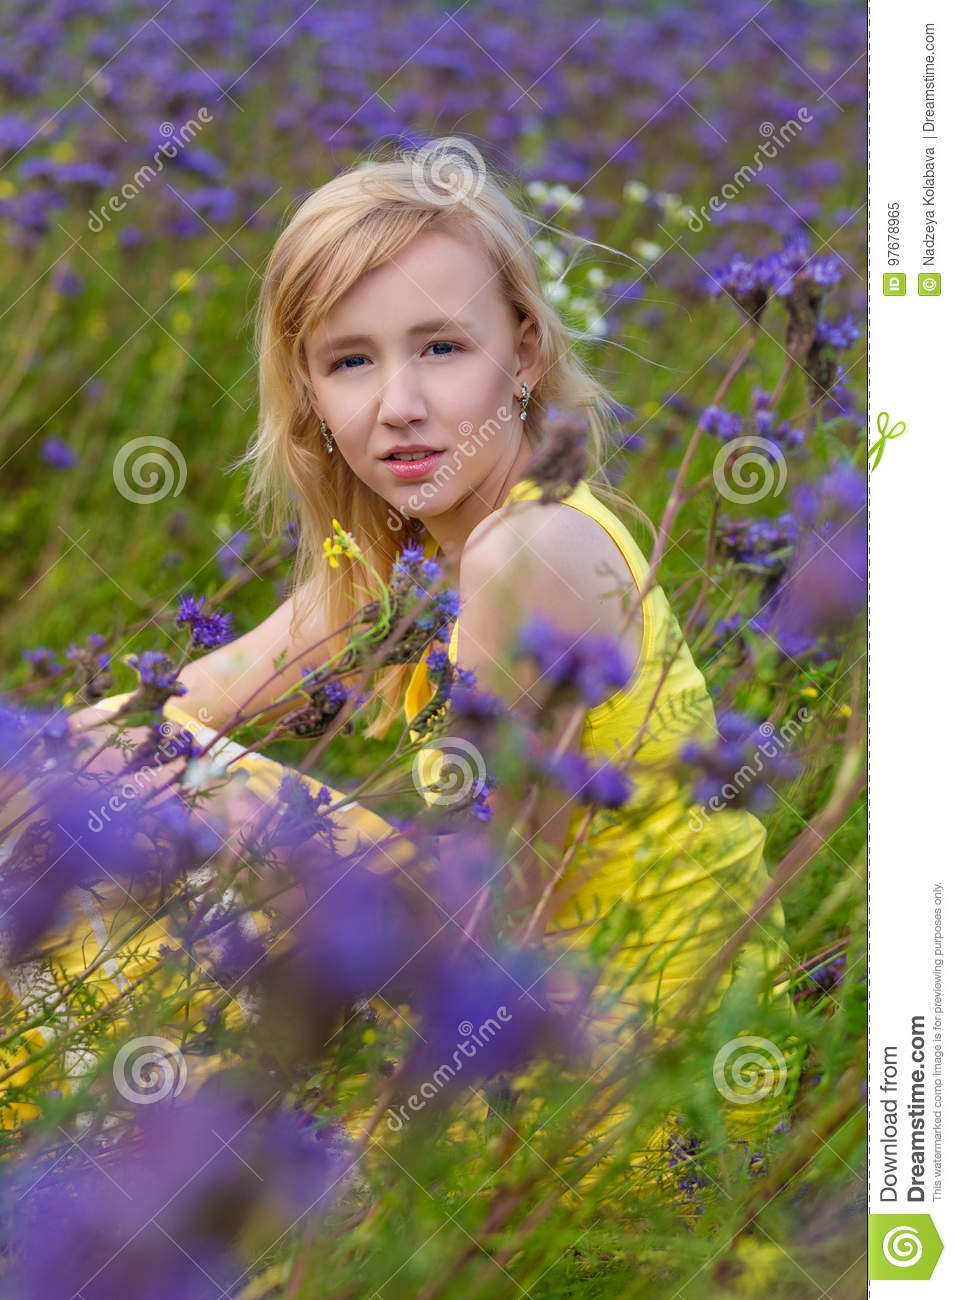 Girl in purple flowers outdoors in summer stock image image of beautiful young girl in a yellow dress in a blooming summer field girl in purple flowers outdoors in summer mightylinksfo